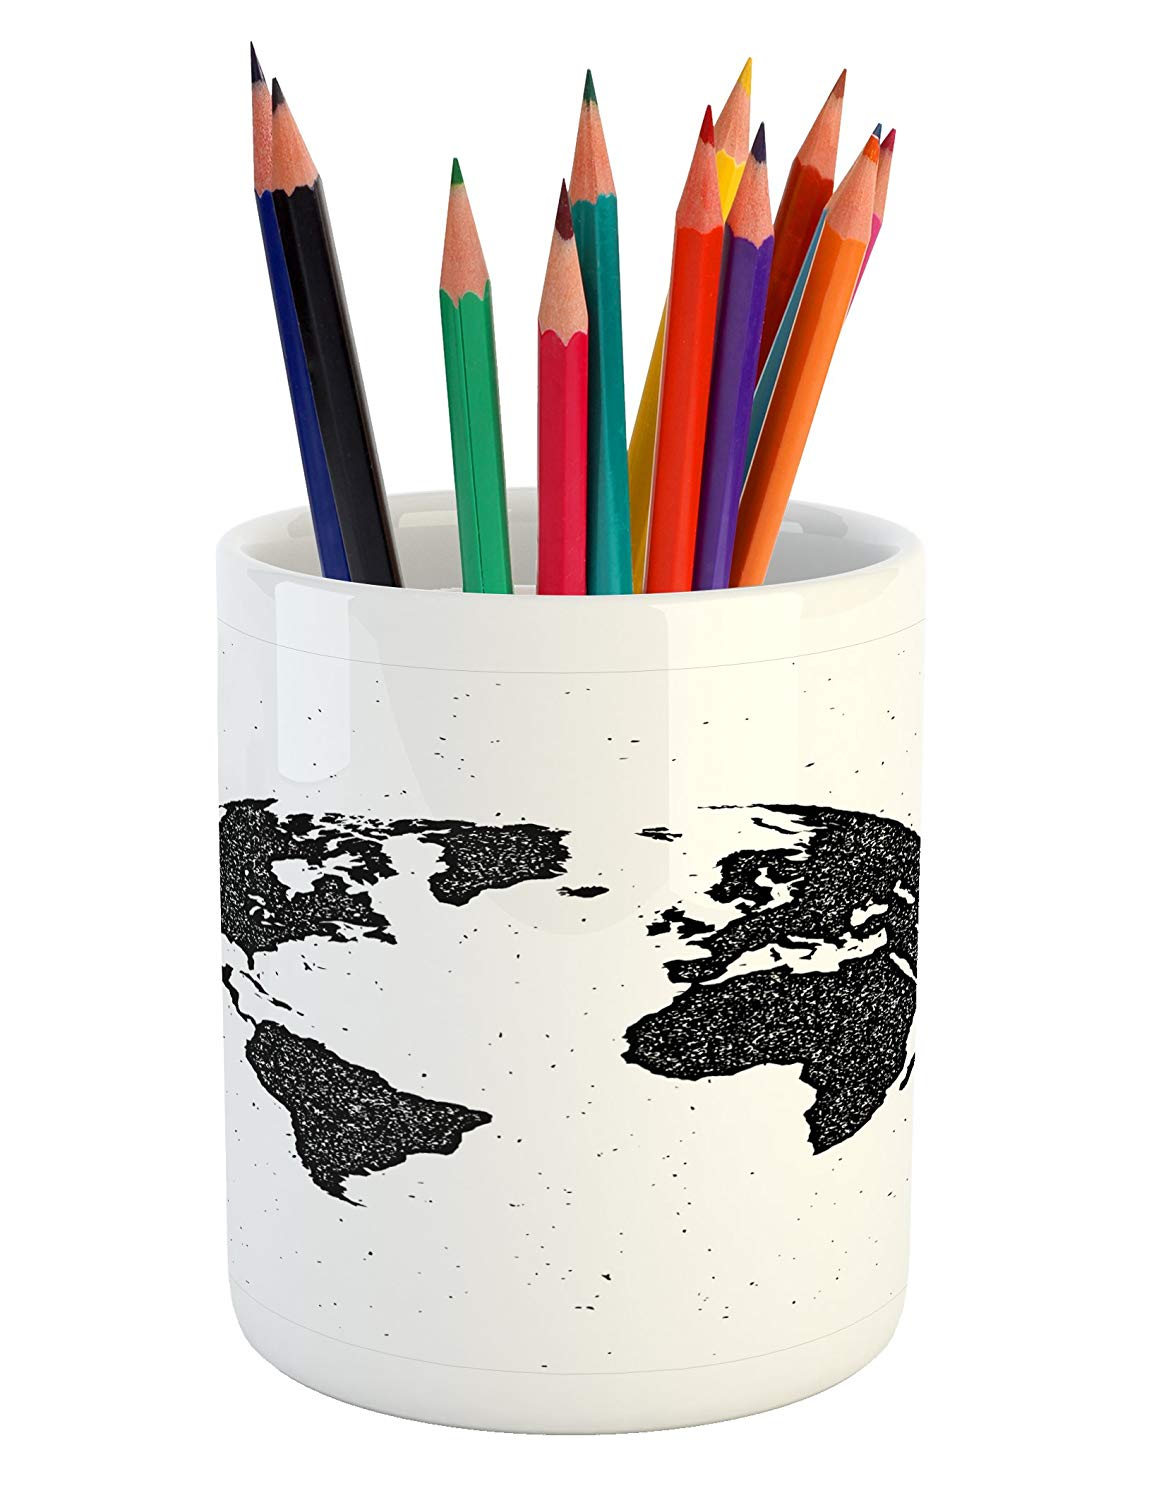 Lunarable Vintage Modern Pencil Pen Holder, Grunge World Map Continents on the Globe America Europe Africa and Asia, Printed Ceramic Pencil Pen Holder for Desk Office Accessory, Black and White